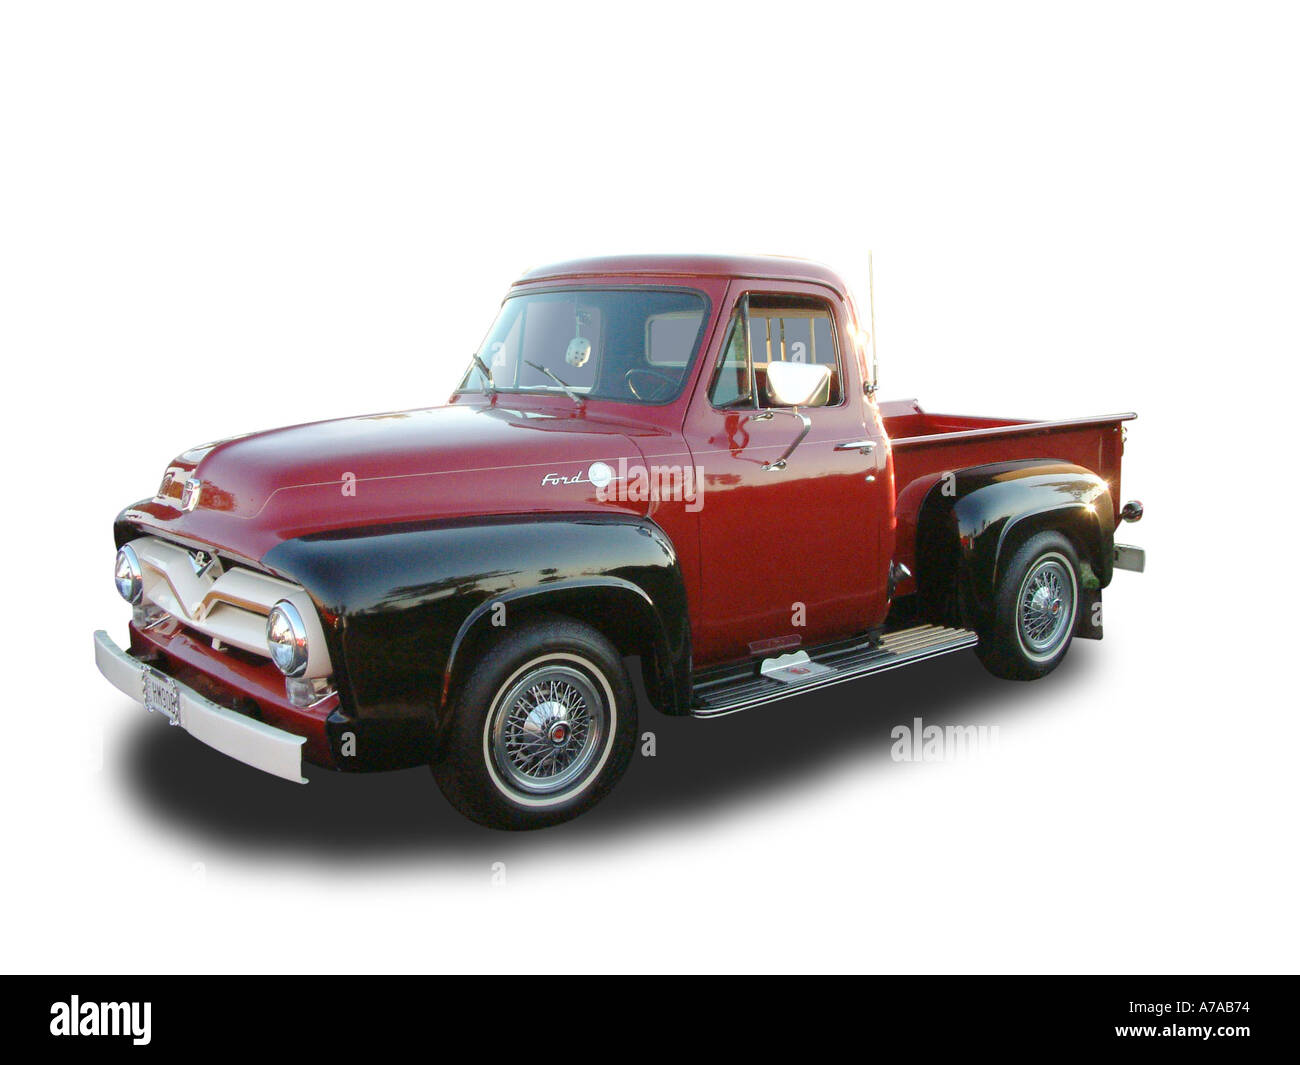 Ford F100 Pickup Truck Stock Photos 1955 Wide Bed Hm90b Image